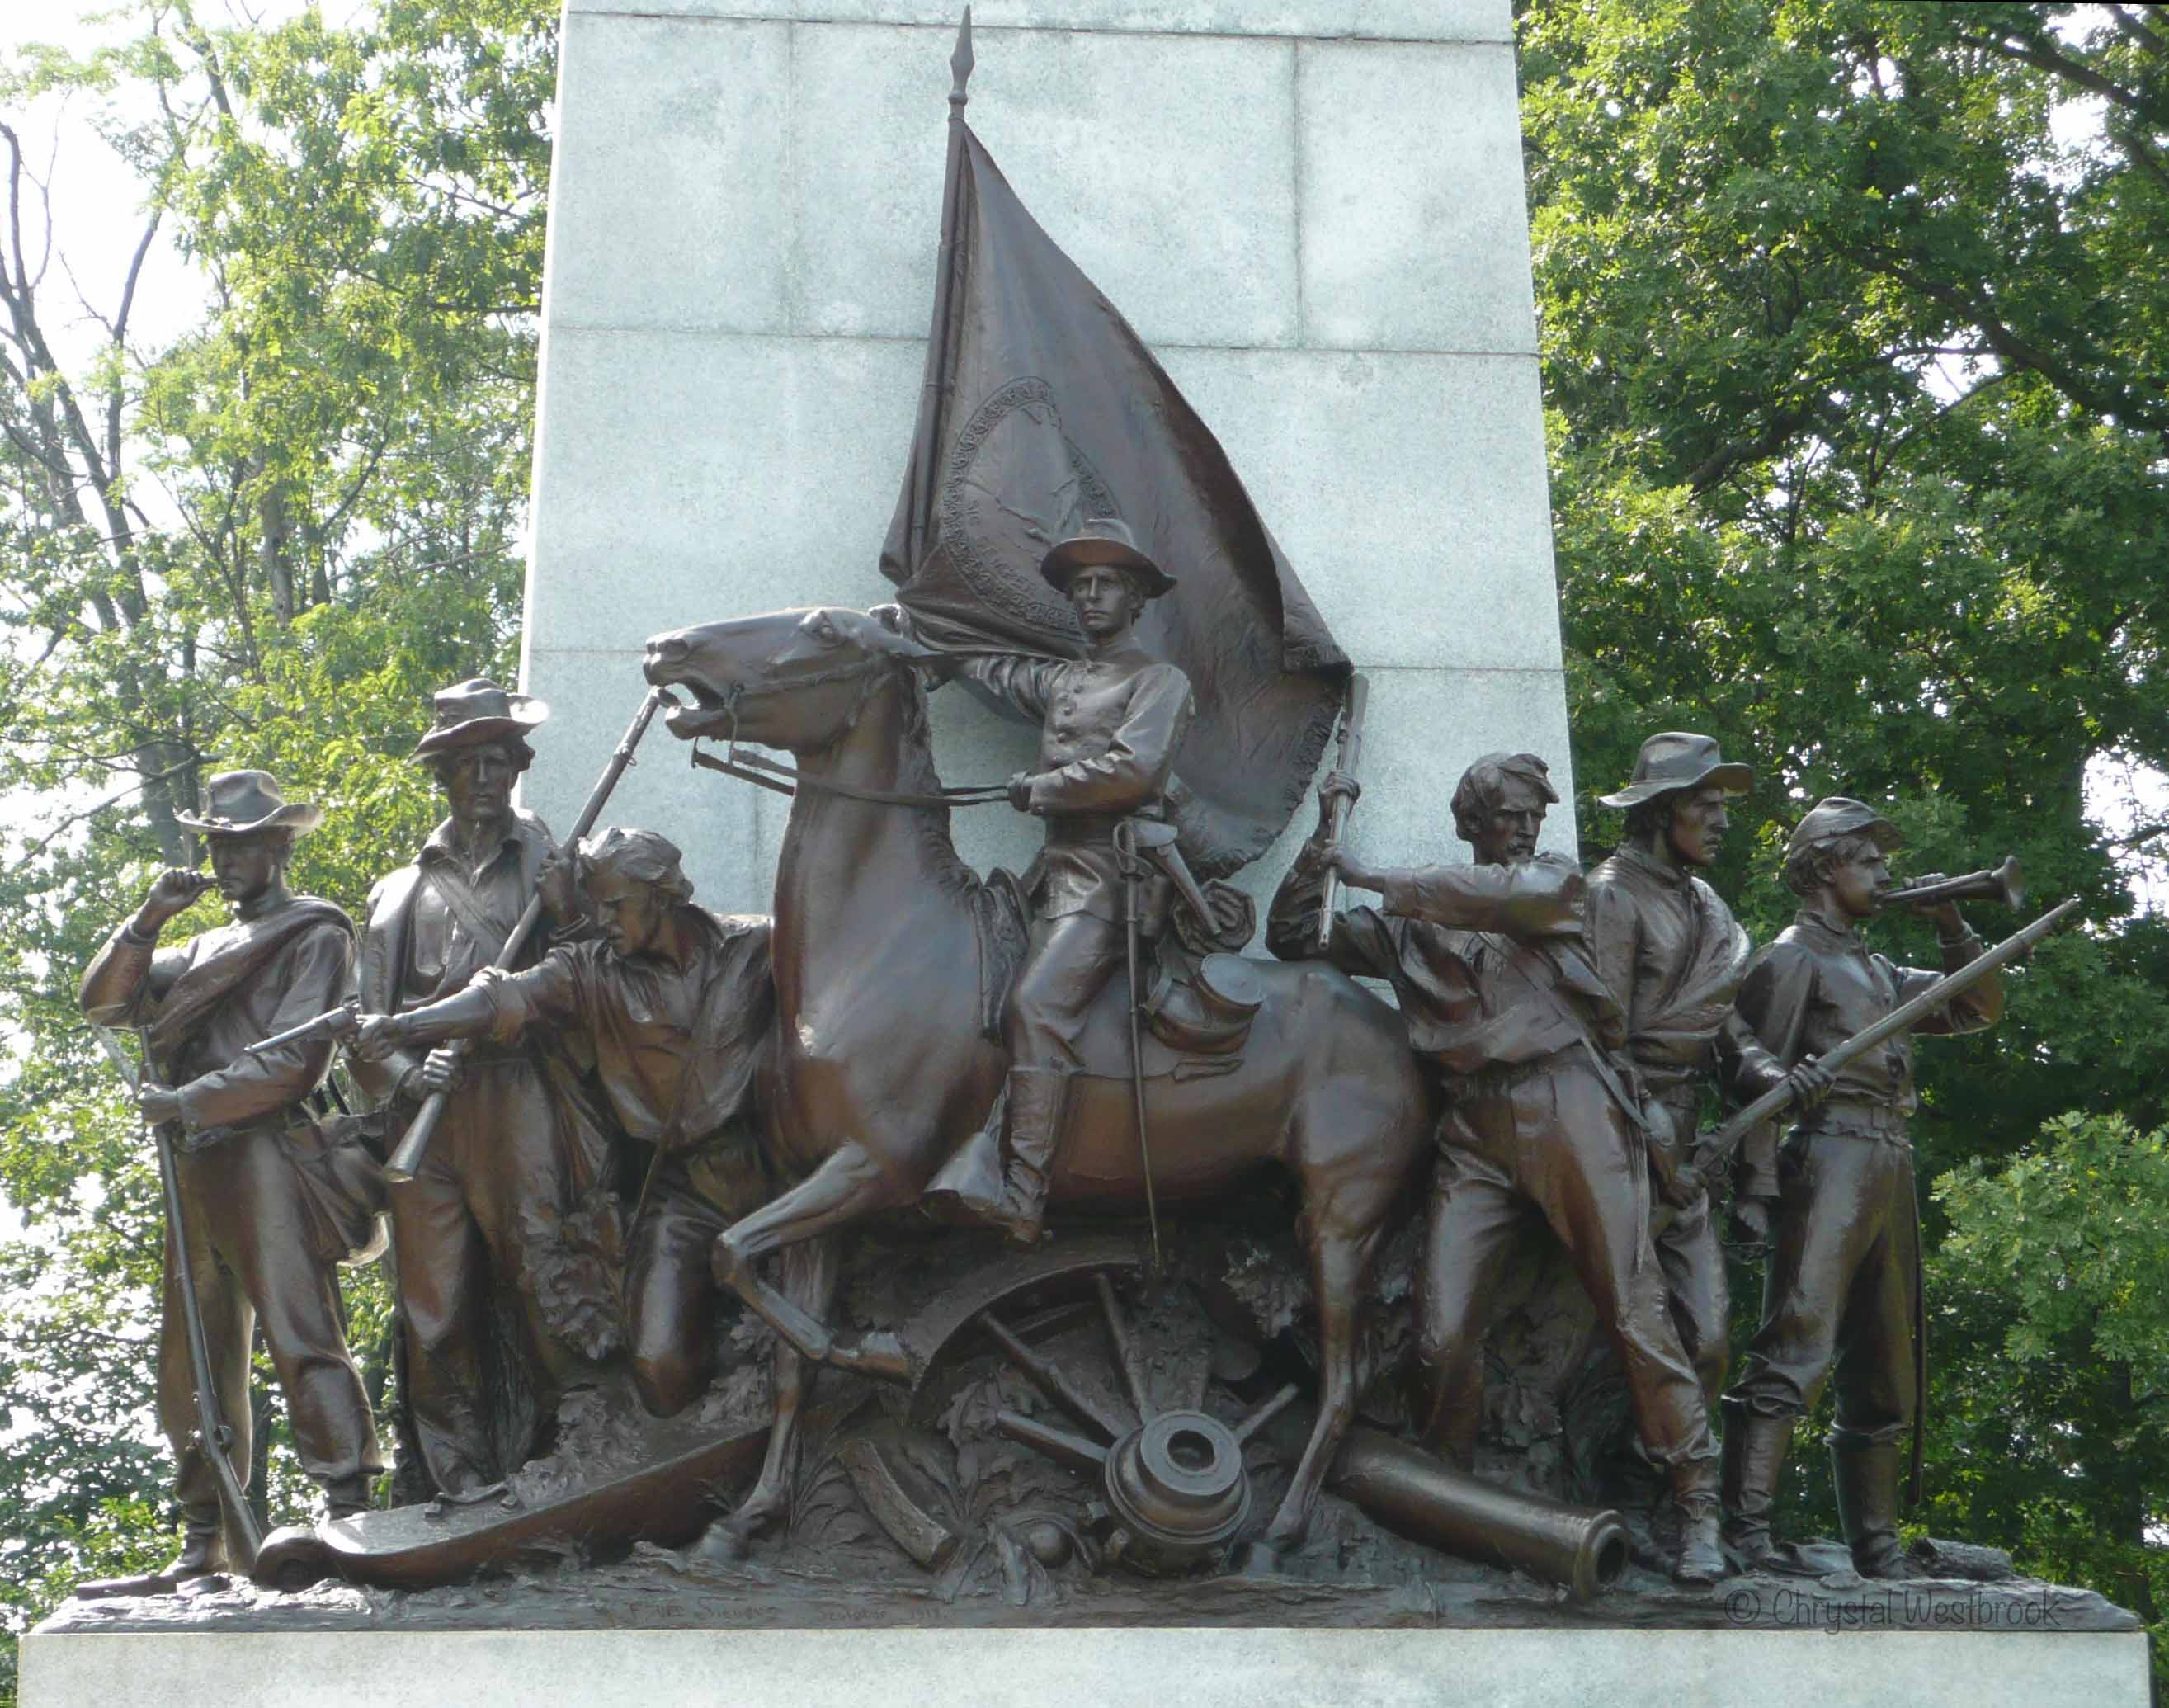 [IMAGE] Statue of a Civil War era group of soldiers